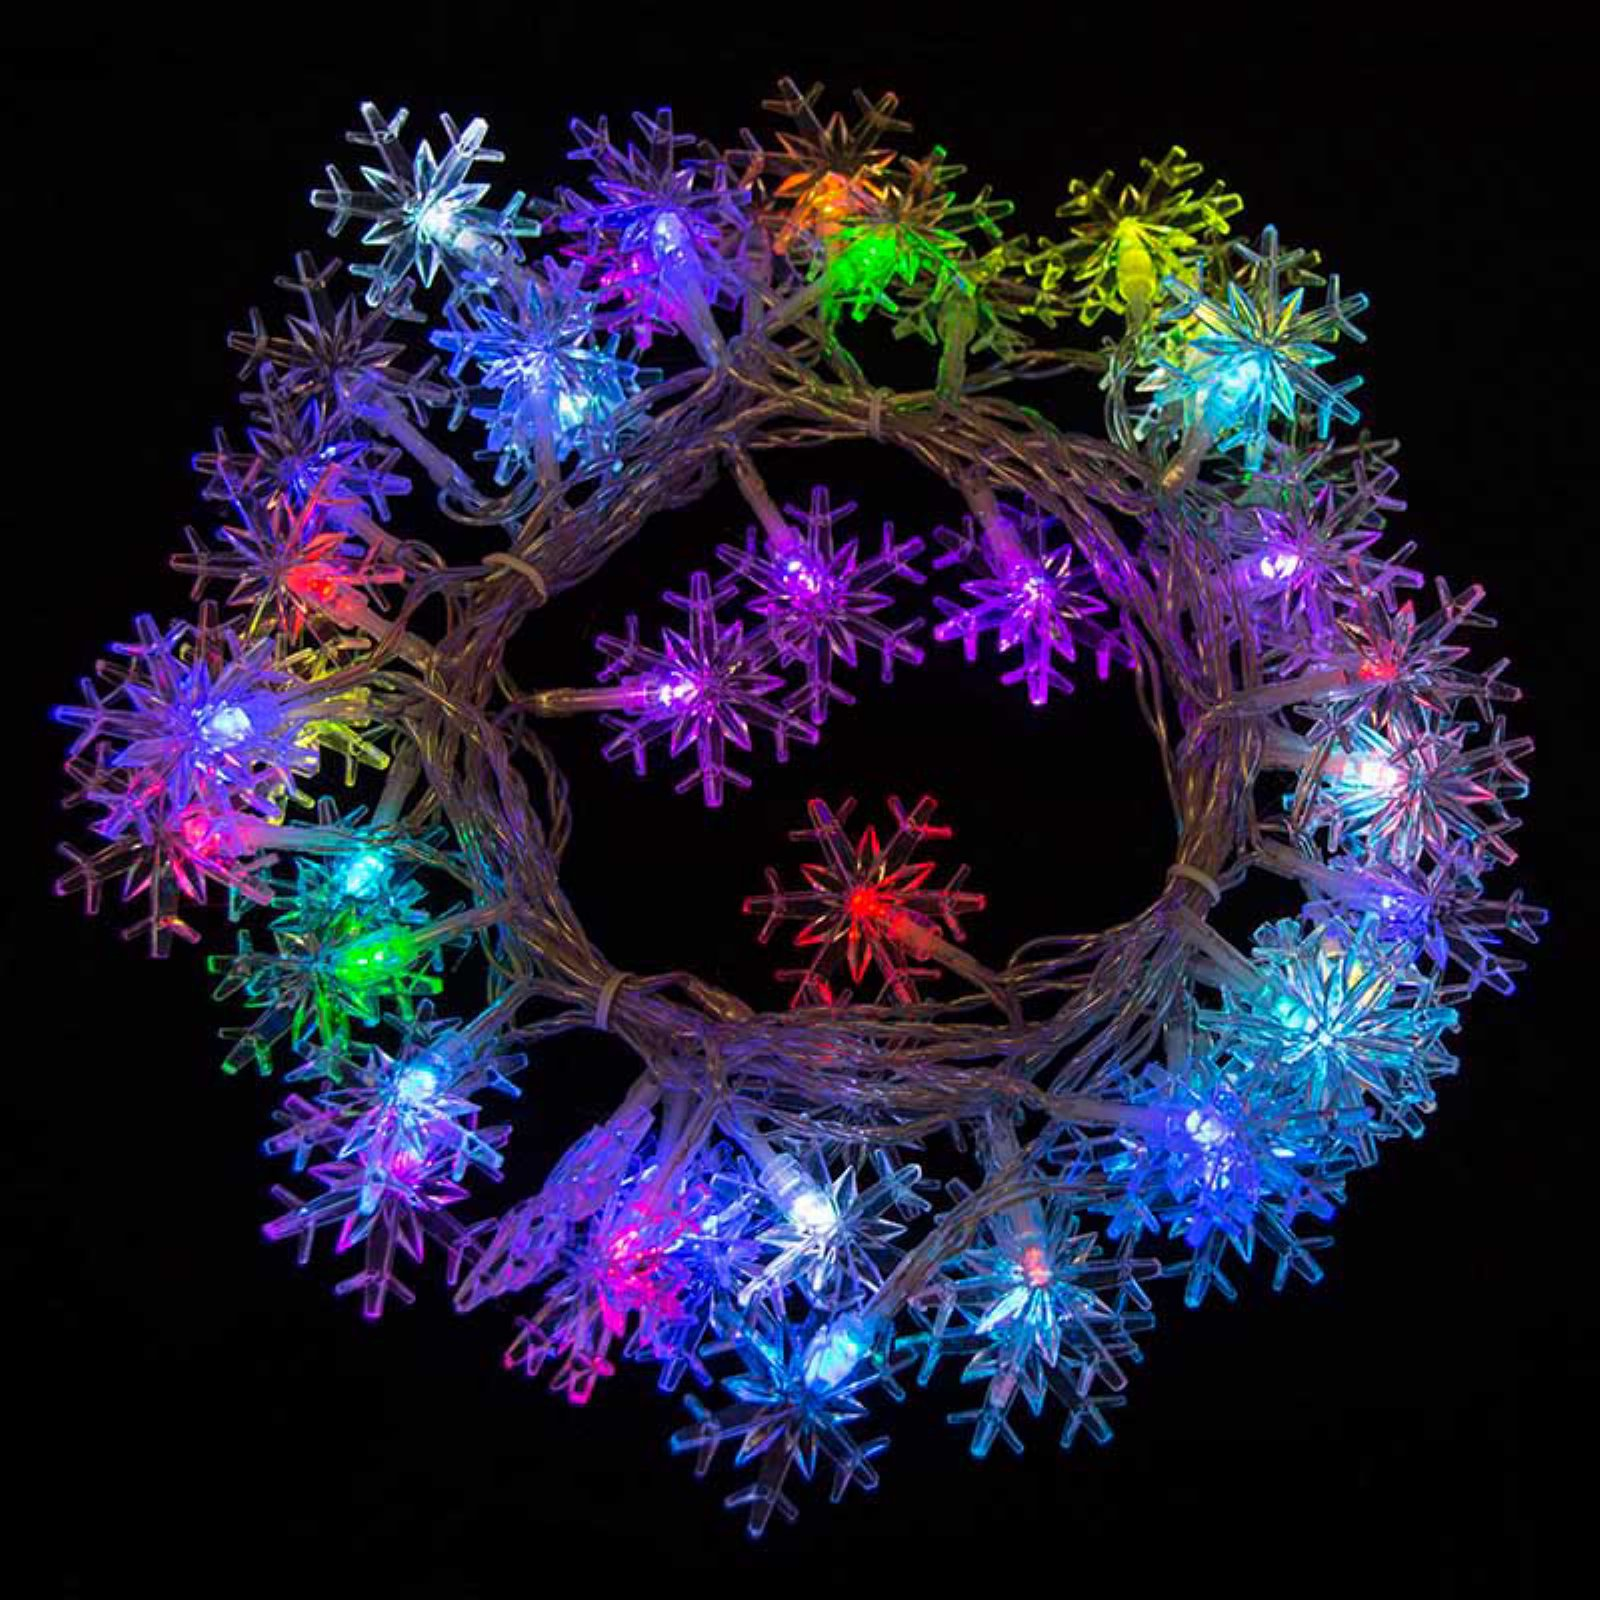 2EL50LEDSNOWRGB Electric Powered 50 LED Multicolor Snowflake Flash Light Christmas Holiday Light, 19.5', Lot... by ALEKO